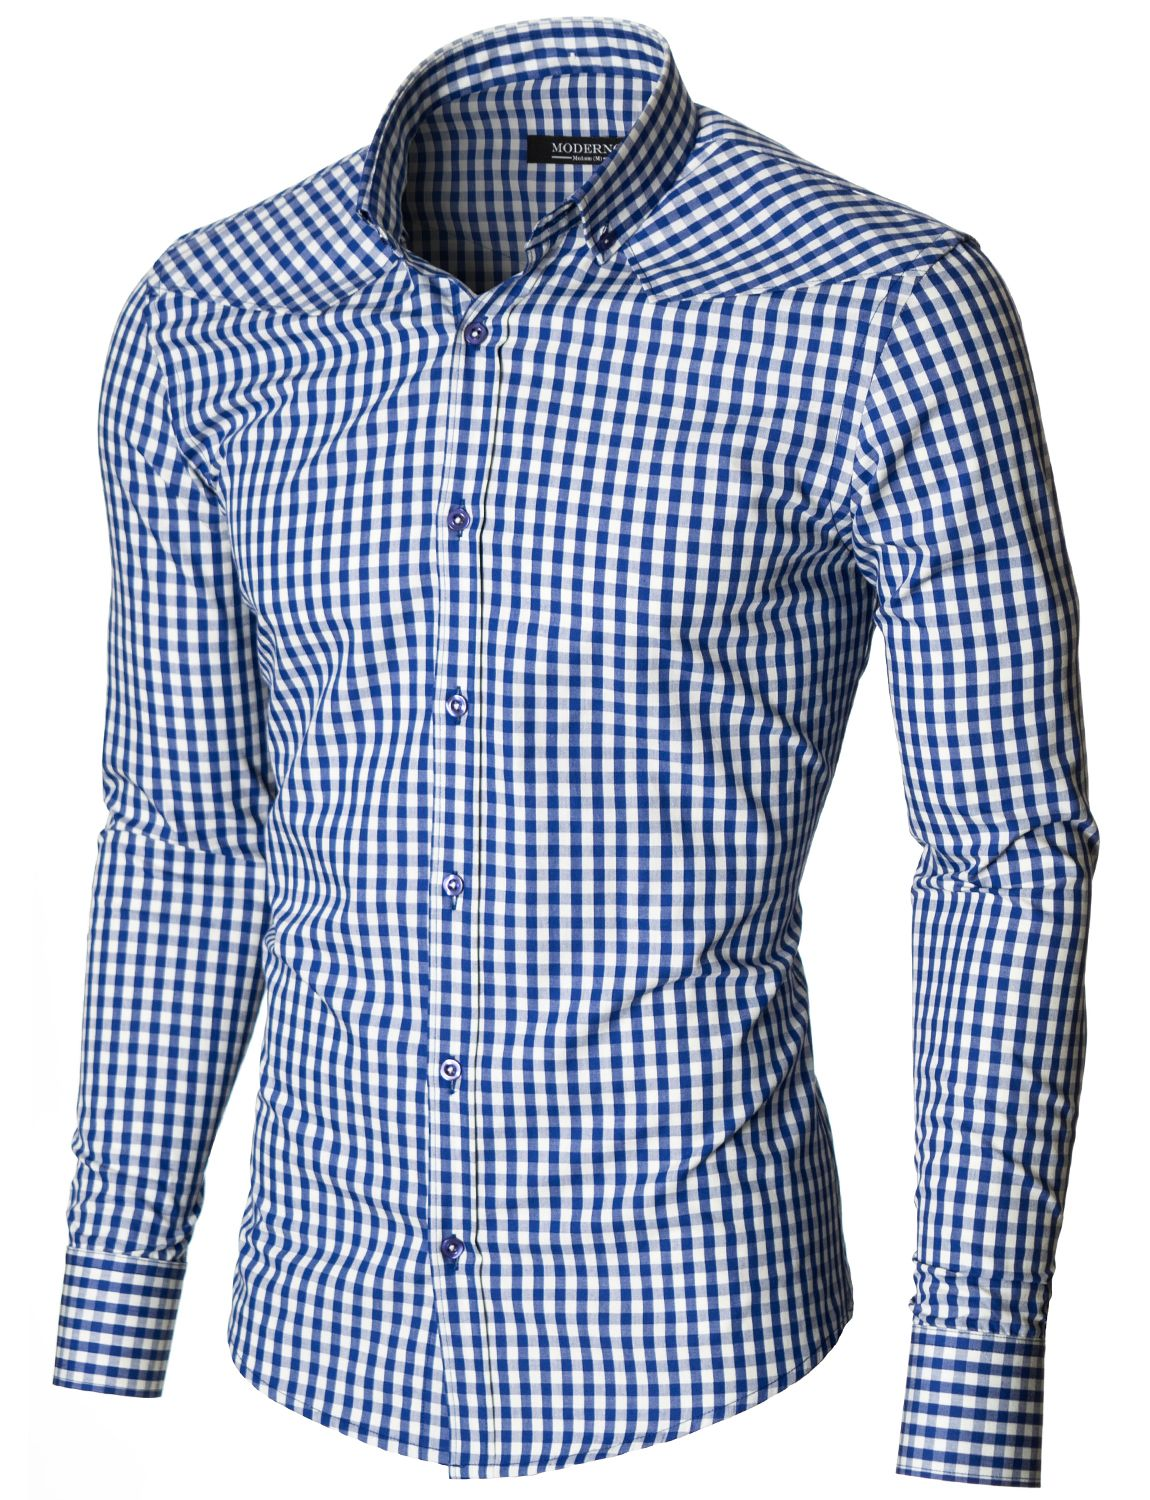 MODERNO Mens Slim Fit Checkered Shirt (MOD1458LS) Blue White ... 4c0bf37029